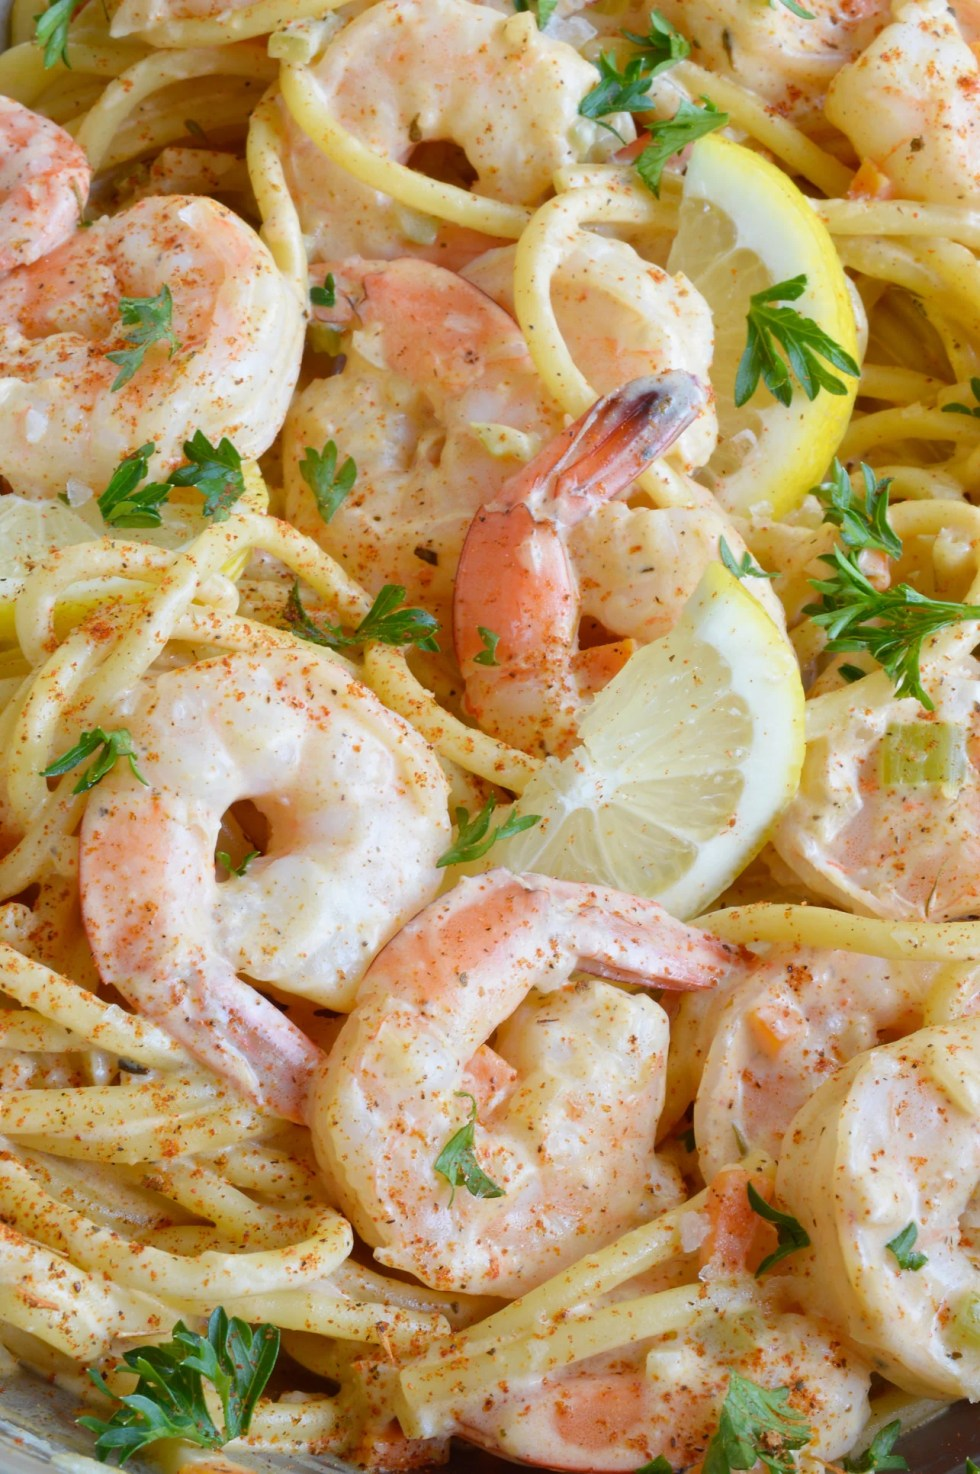 Cajun Shrimp Pasta is a fancy yet simple dinner recipe. Shrimp and pasta slathered in a creamy wine sauce flavored with Cajun spices and lemon zest. Perfect for date night at home!